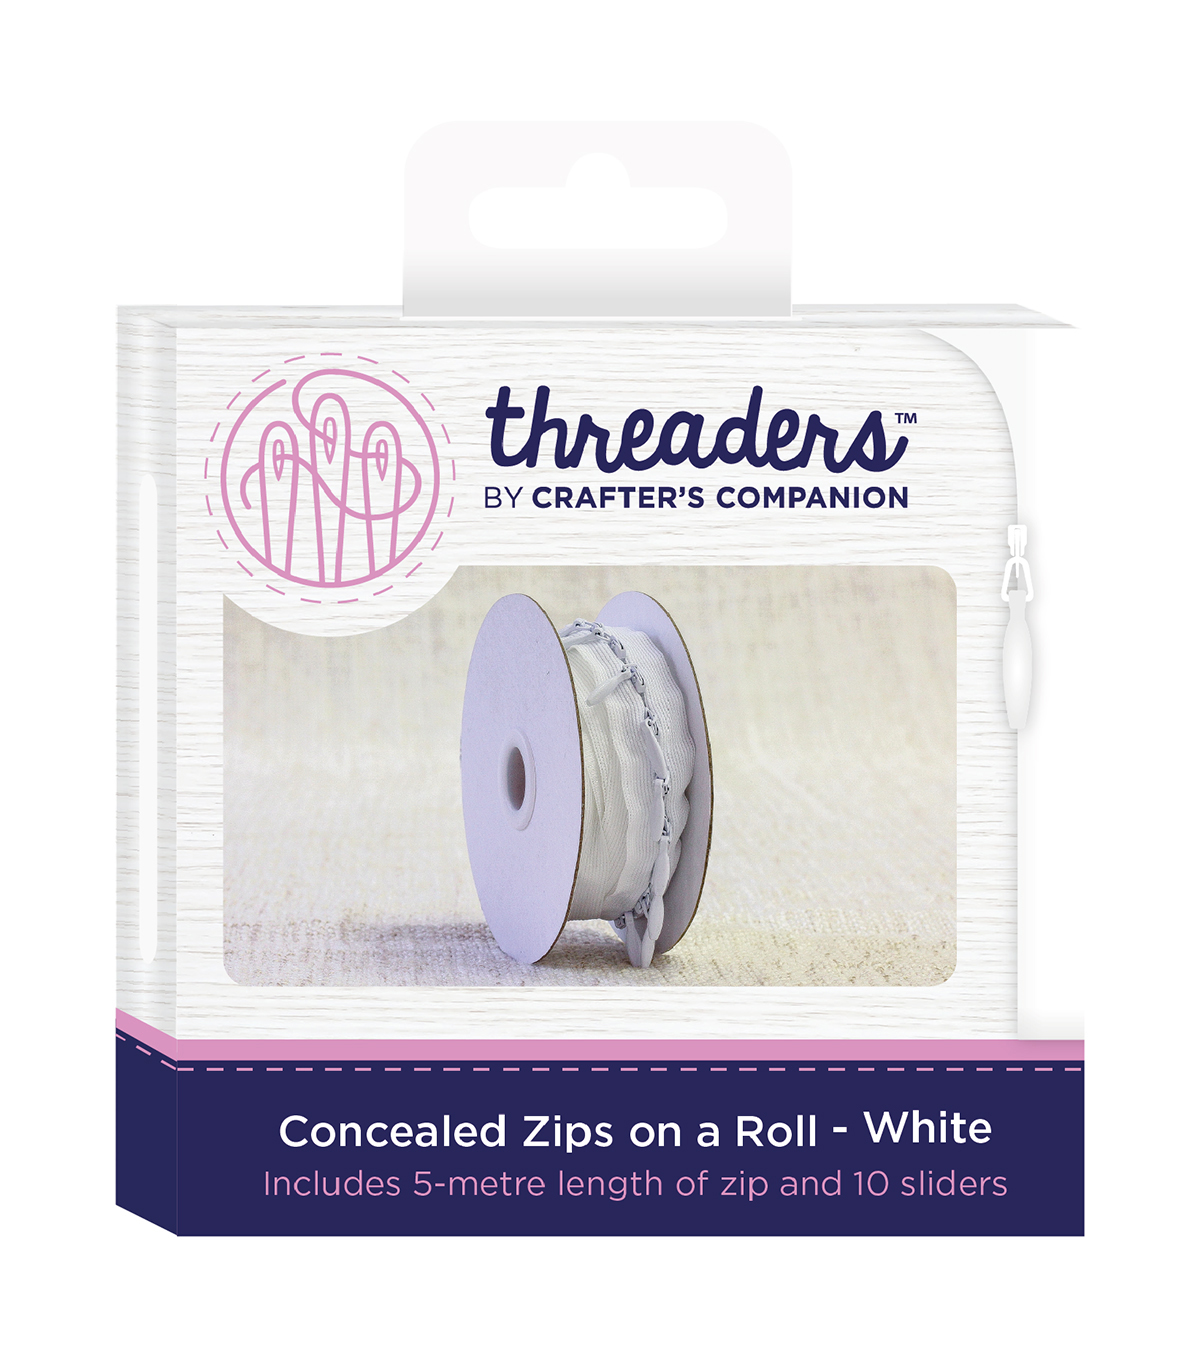 Threaders Concealed Zips on a Roll-White